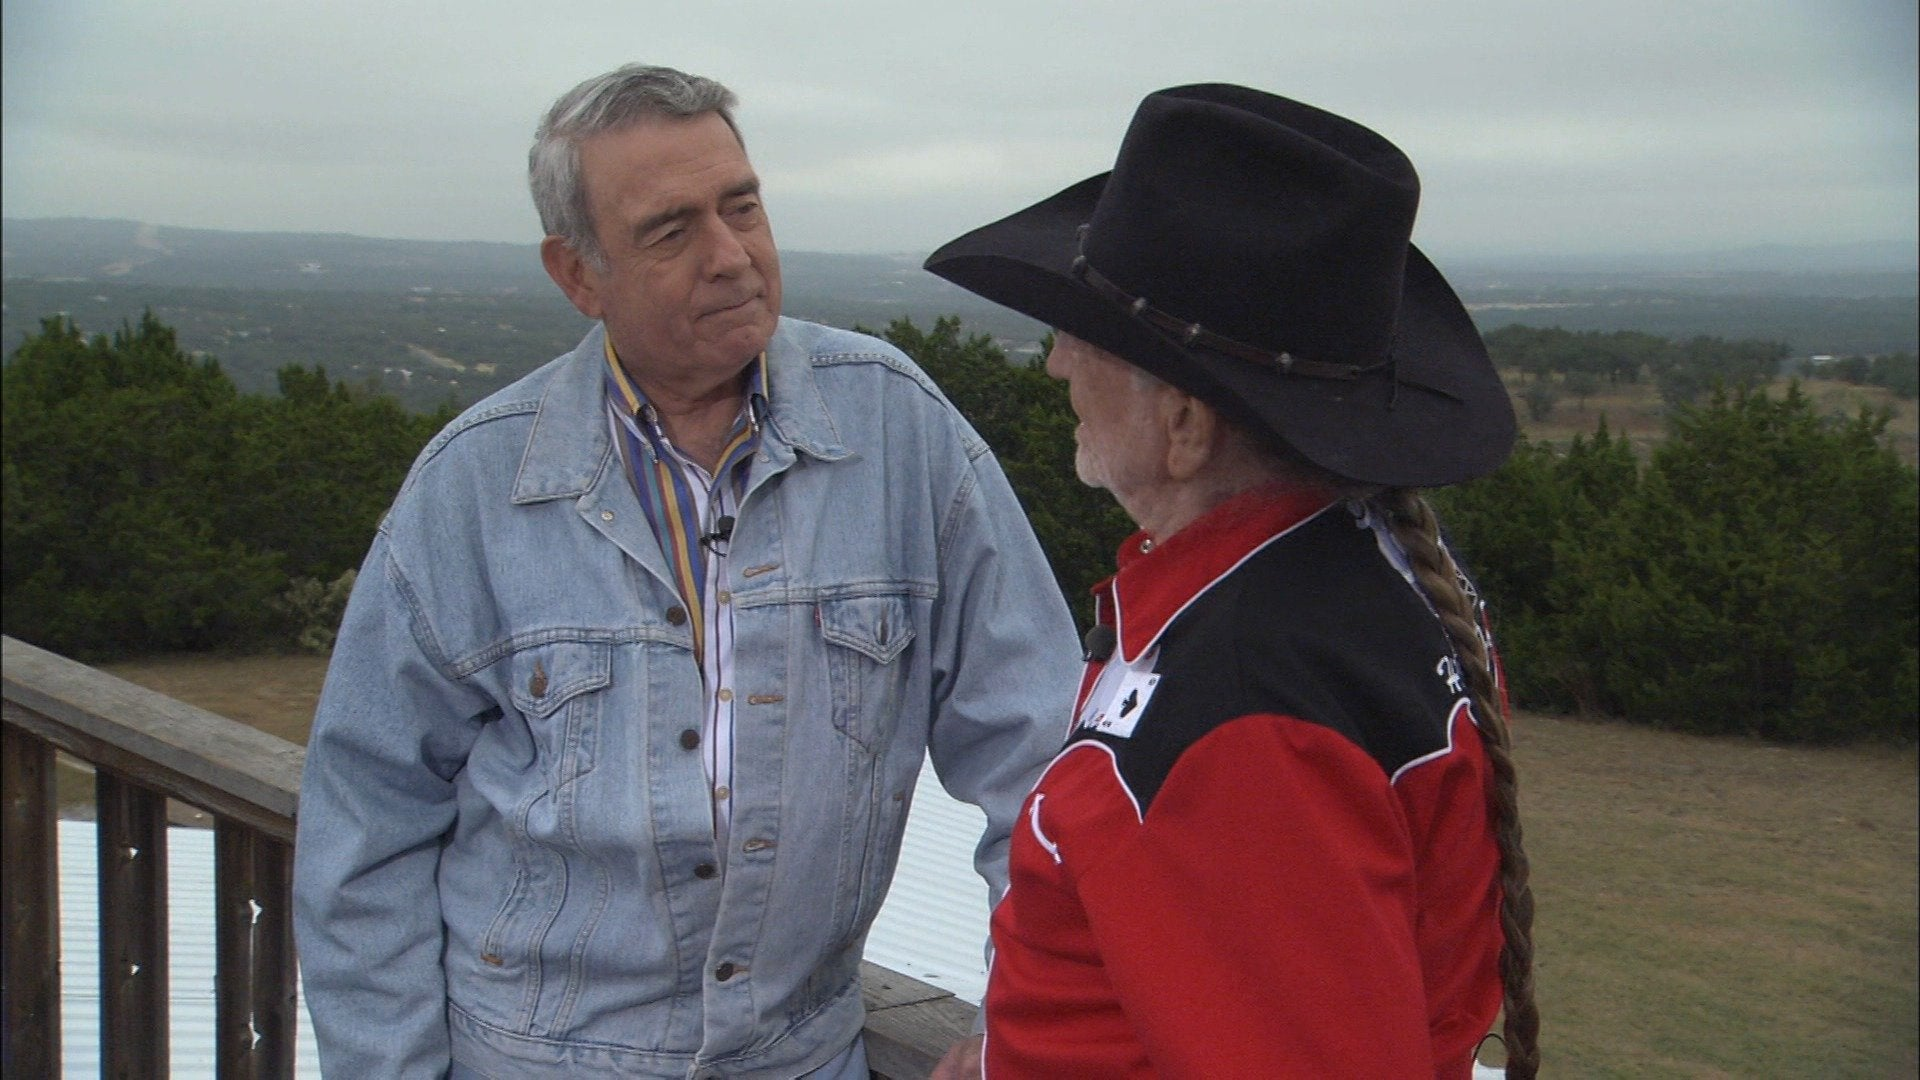 American Voices: A Conversation With Dan Rather and Willie Nelson